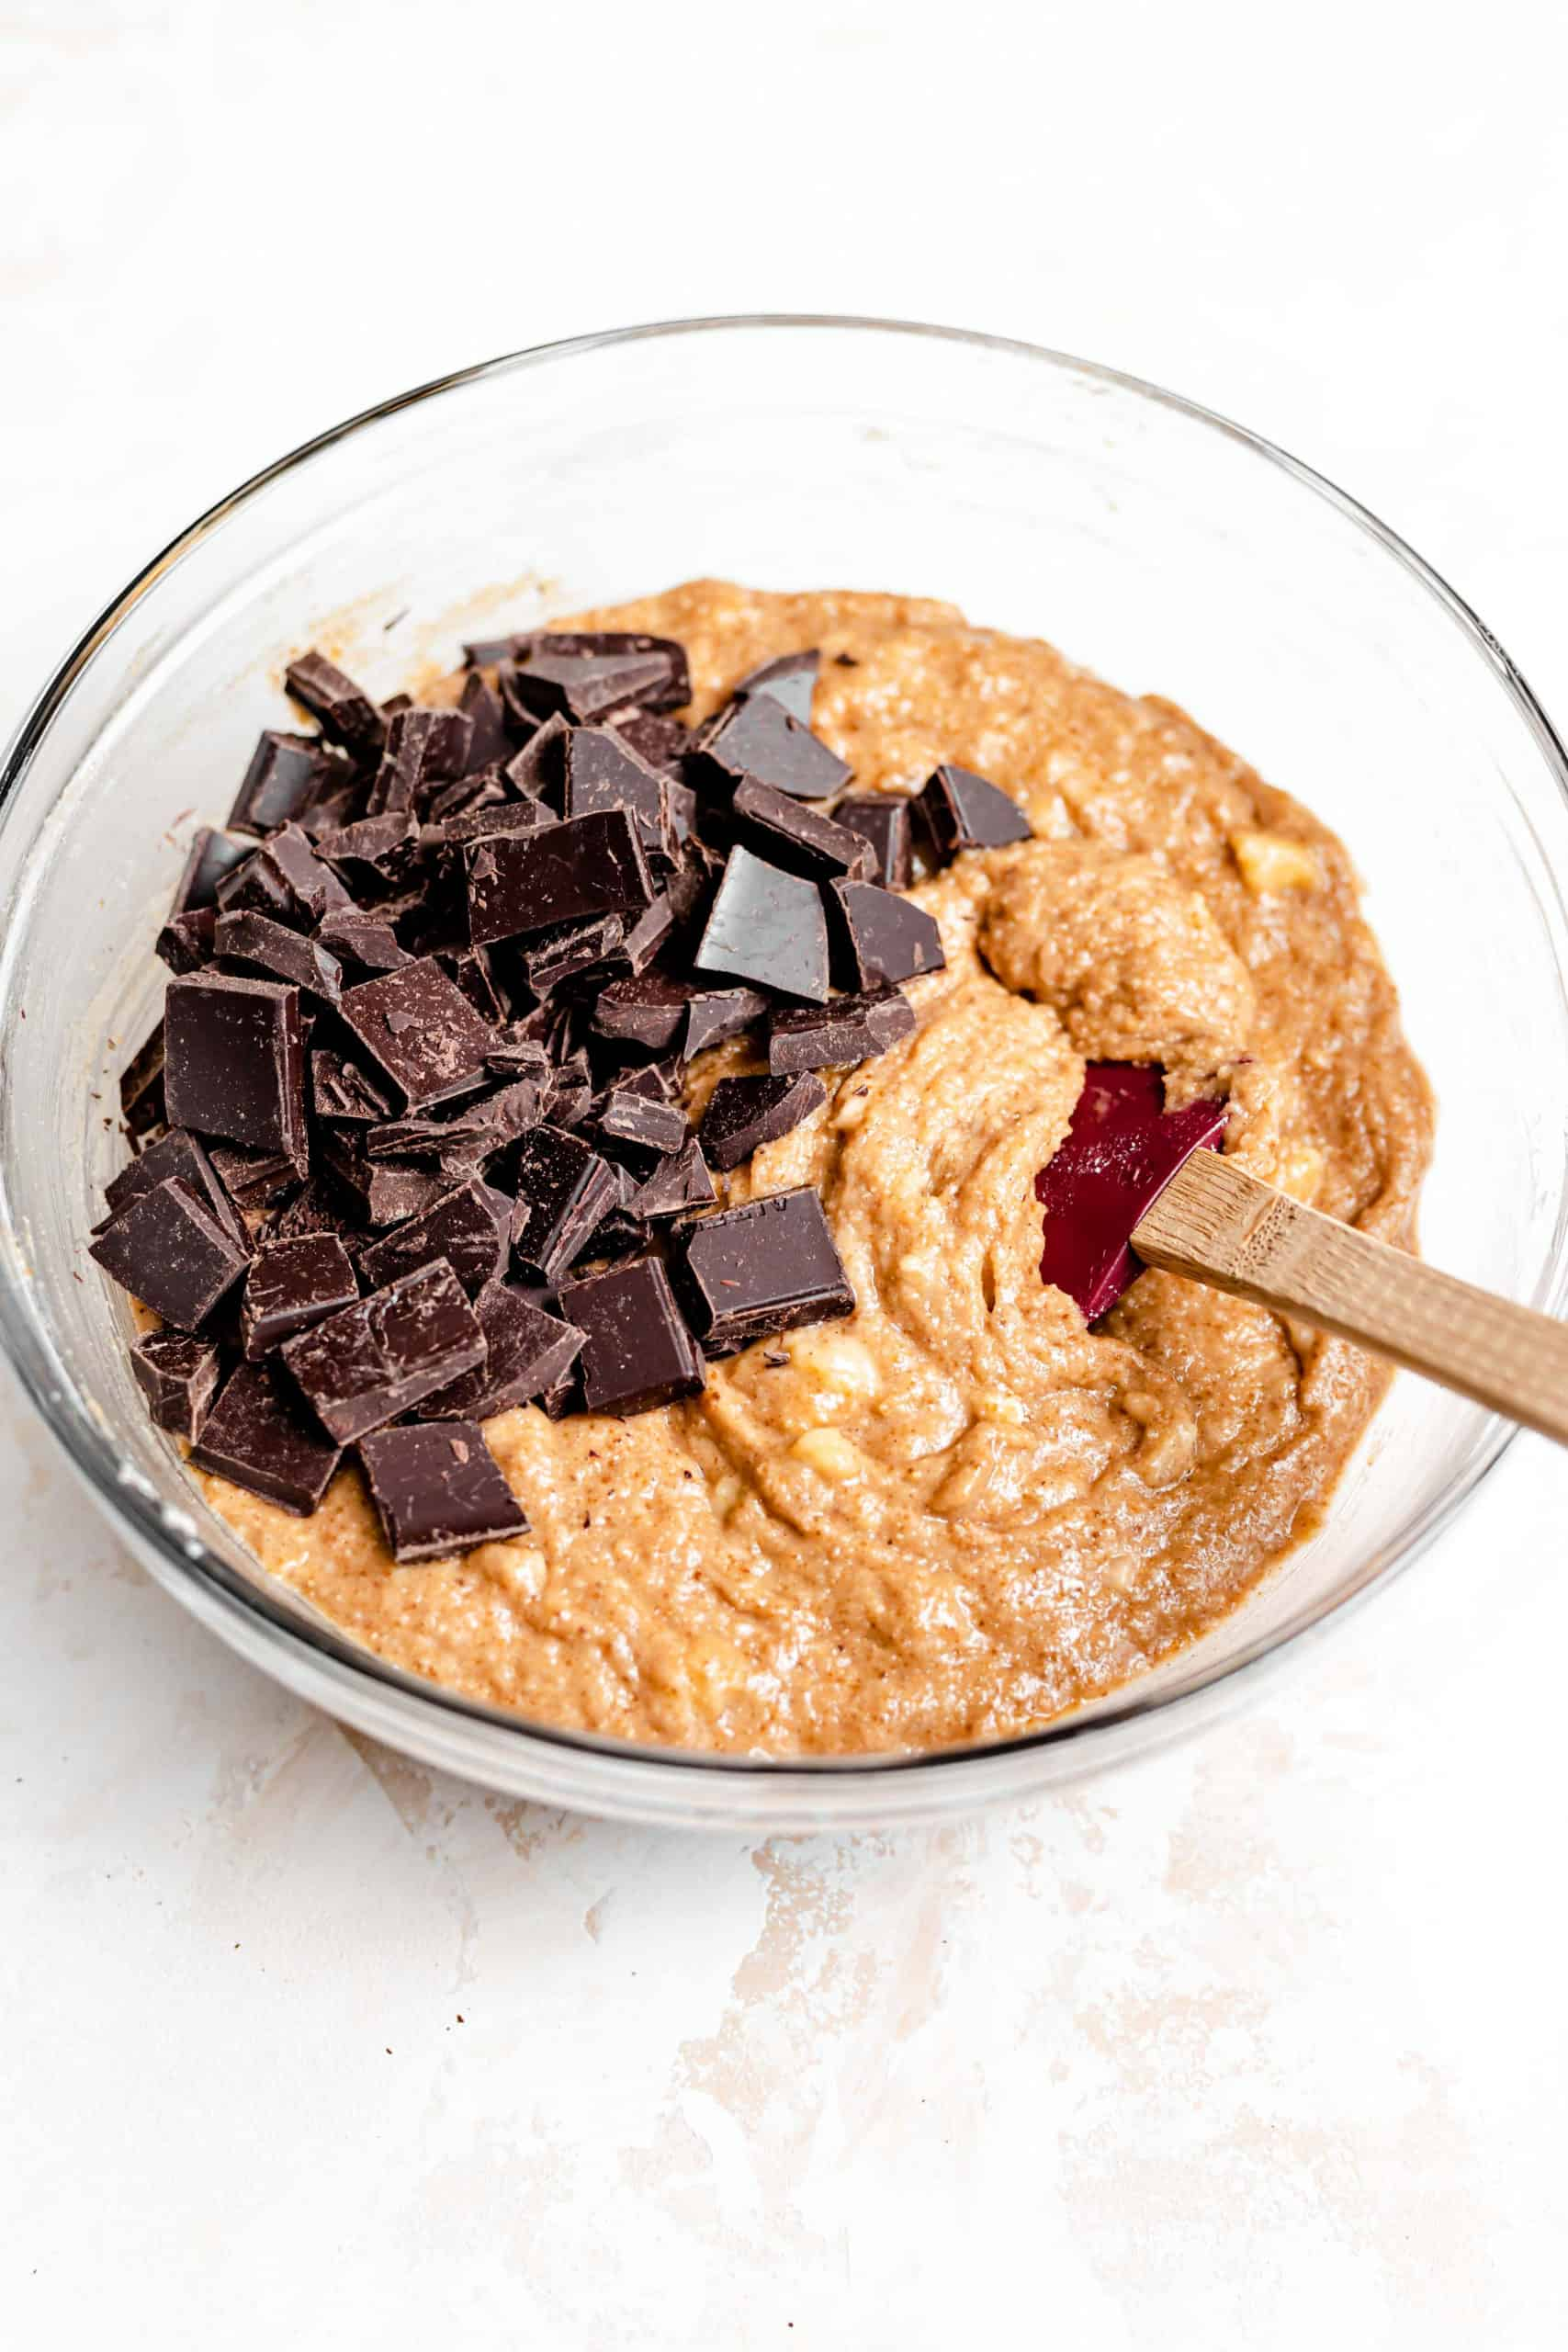 grain free banana bread batter with chocolate chunks